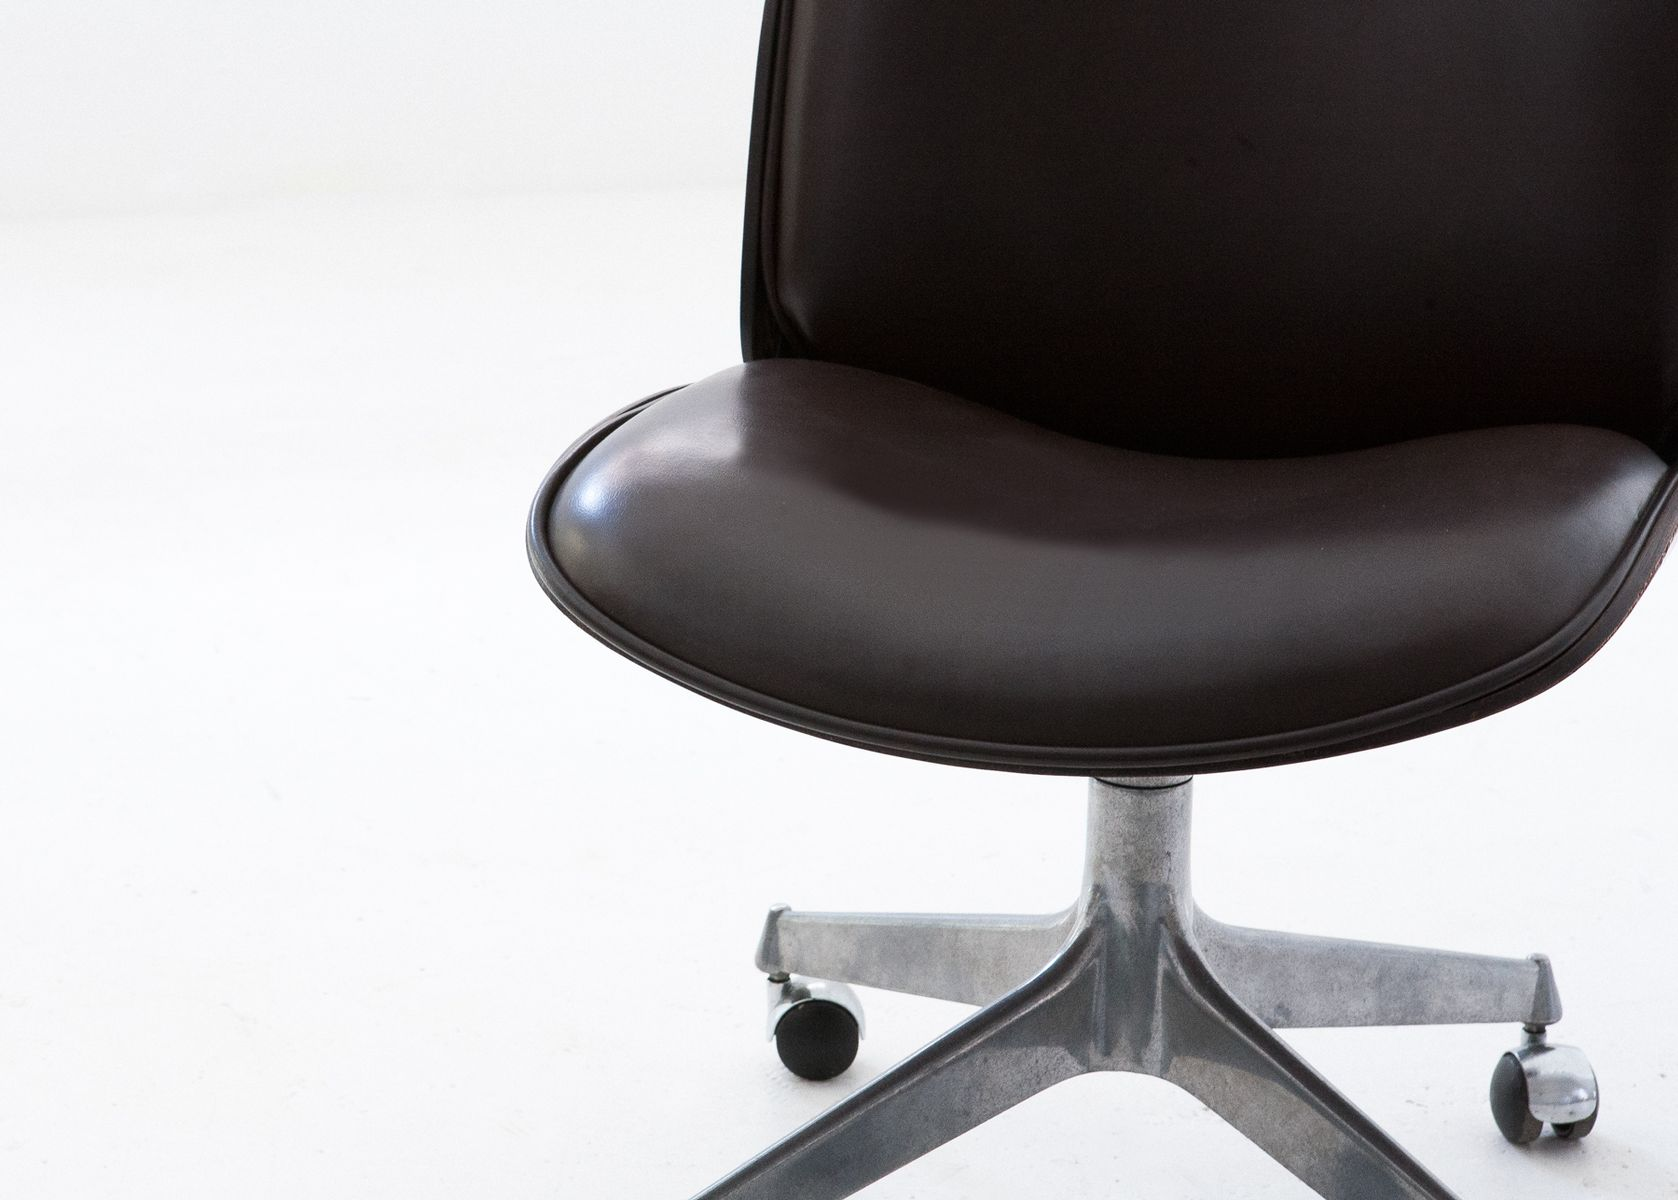 Rosewood & Dark Brown Leather Swivel Chair by Ico Parisi for MiM